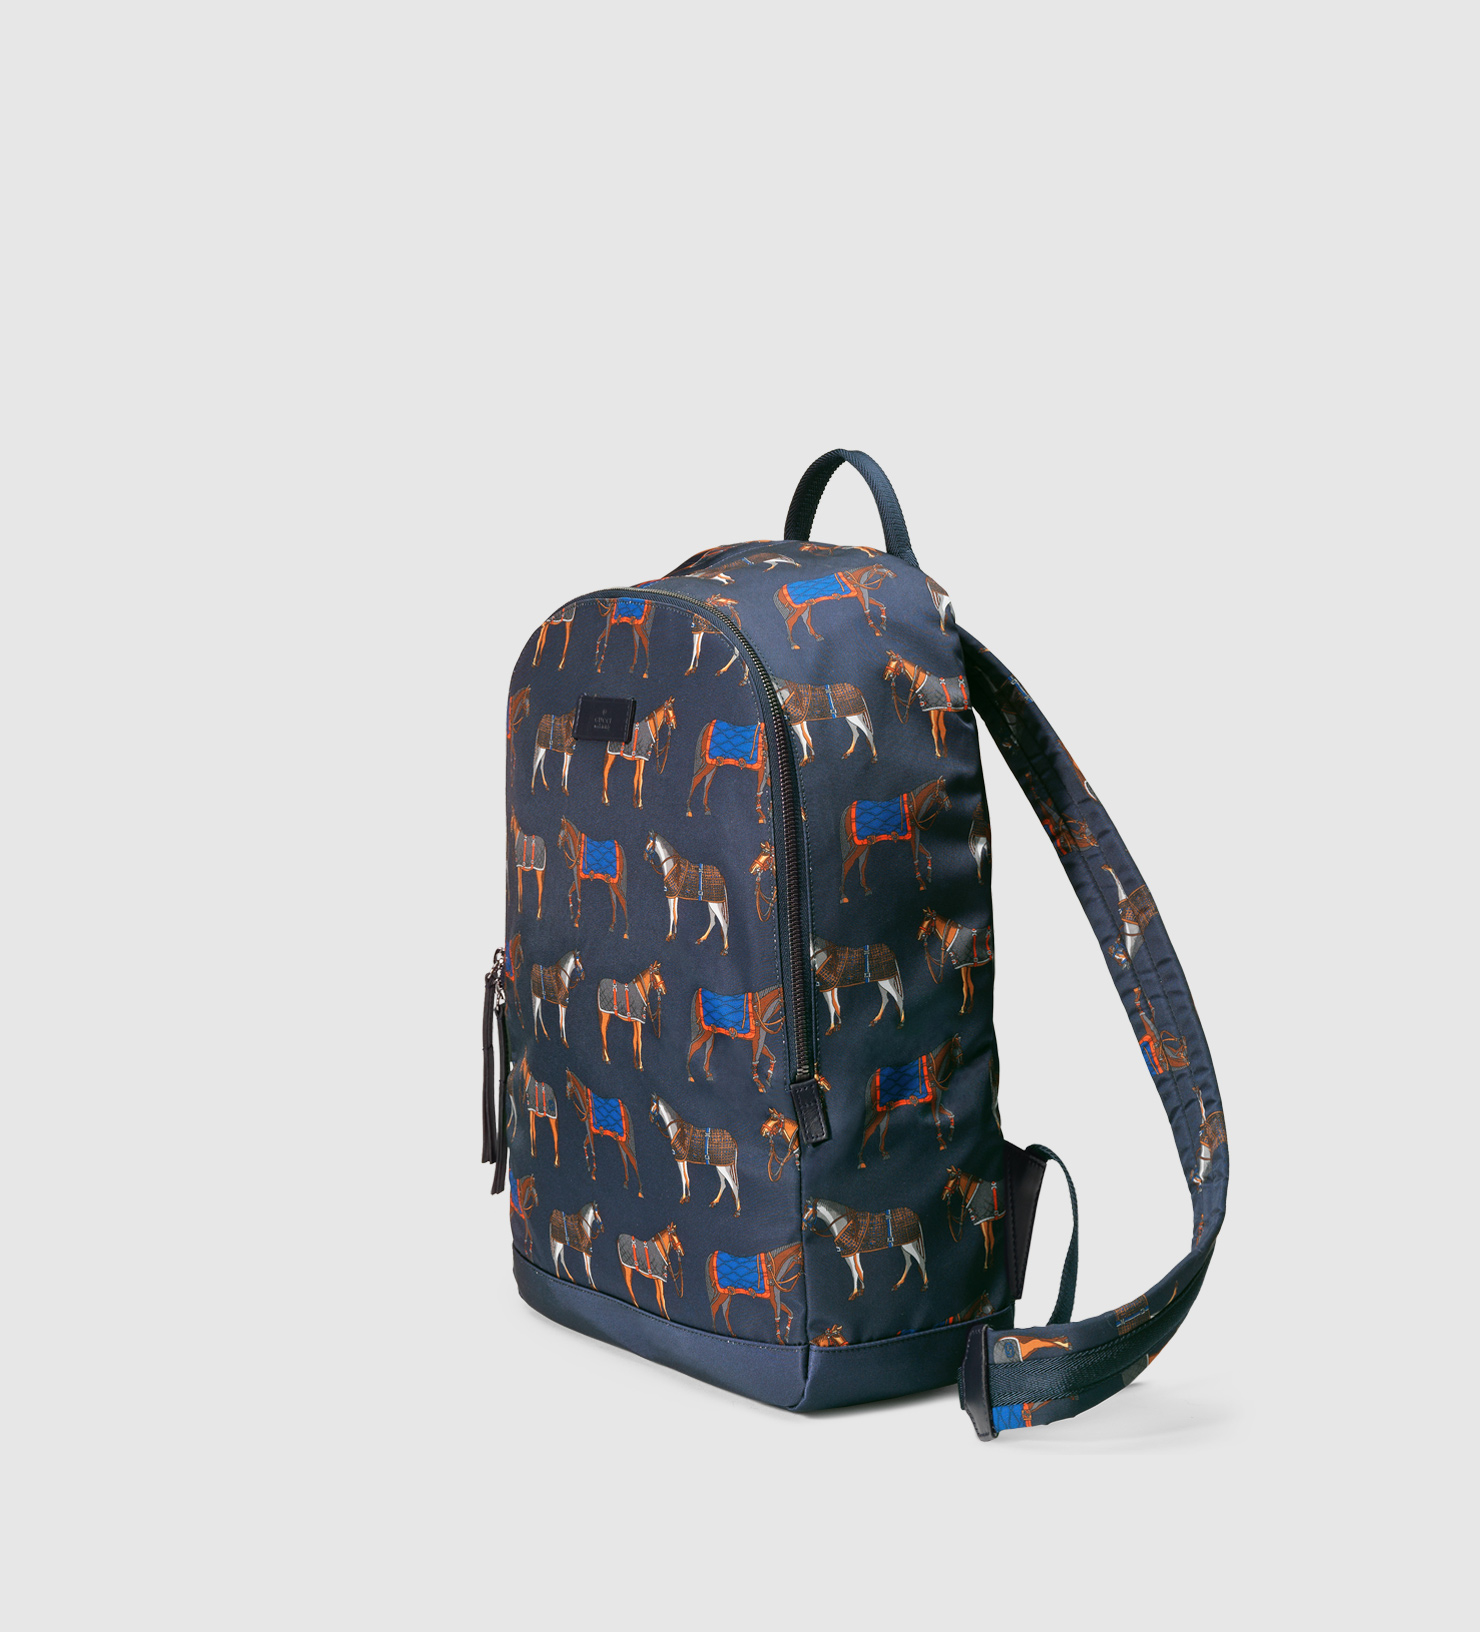 22f7ded7bc93 Gucci Horse Print Backpack in Blue for Men - Lyst